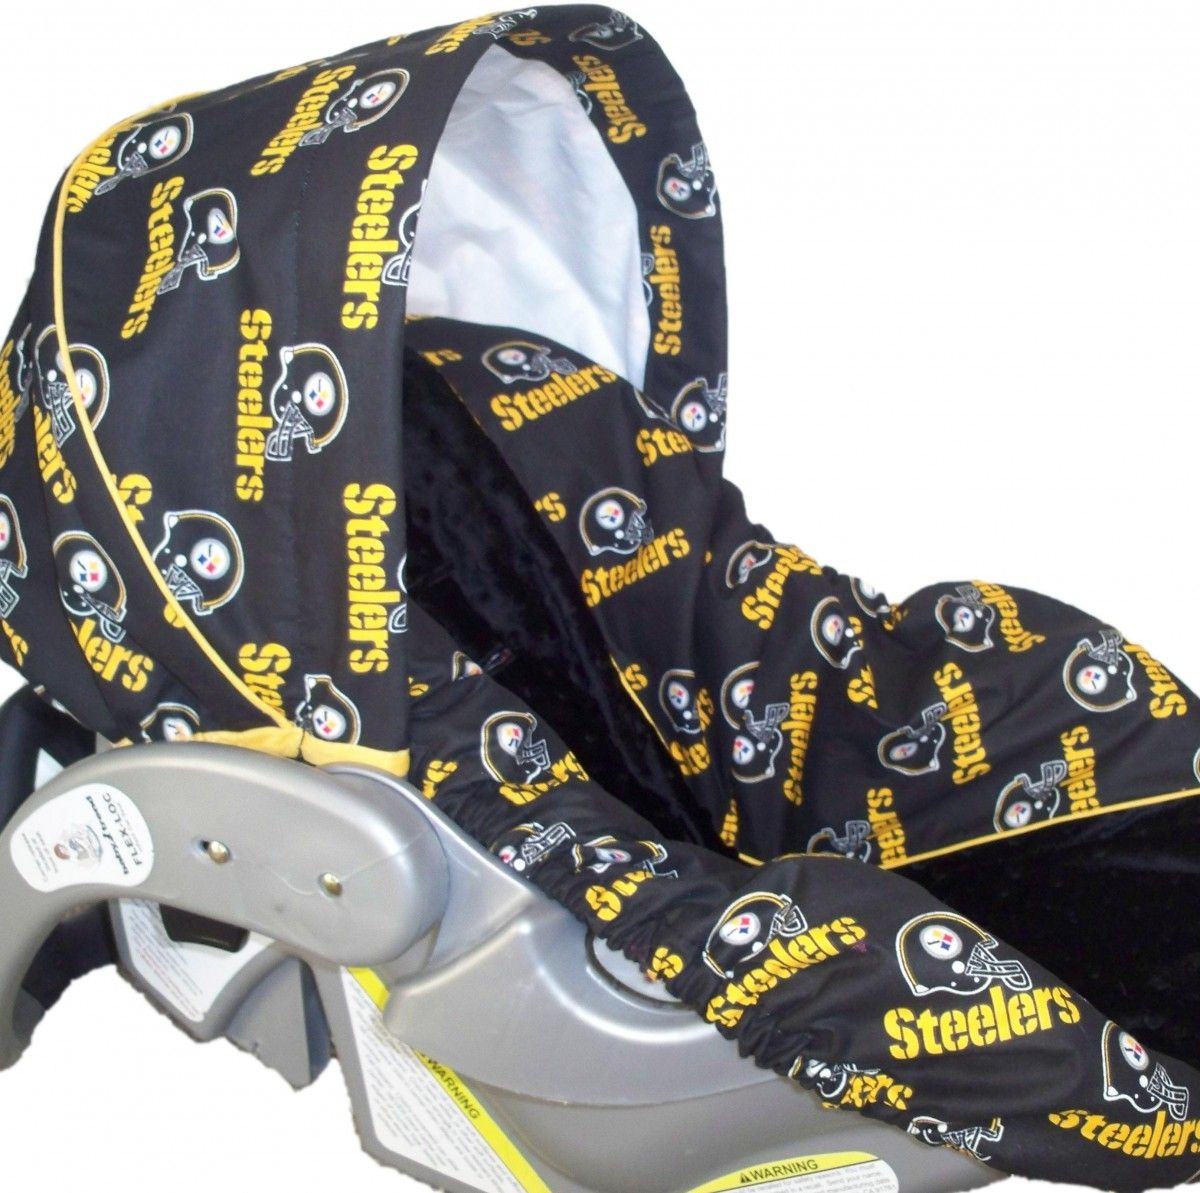 Kids' Clothing Activewear Jackets Jeans Pants Pajamas Shirts & Tees Shorts Socks Sweatshirts & Fleece Underwear Kids' Accessories Backpacks & Bags Lunch Boxes FAN MATS Pittsburgh Steelers 2-Piece Vinyl Car Mat Set, Black $ Compare. Value Deal. FAN MATS Pittsburgh Steelers Gel Wrist Rest, Black $ Compare. Showing 1 - 12 of